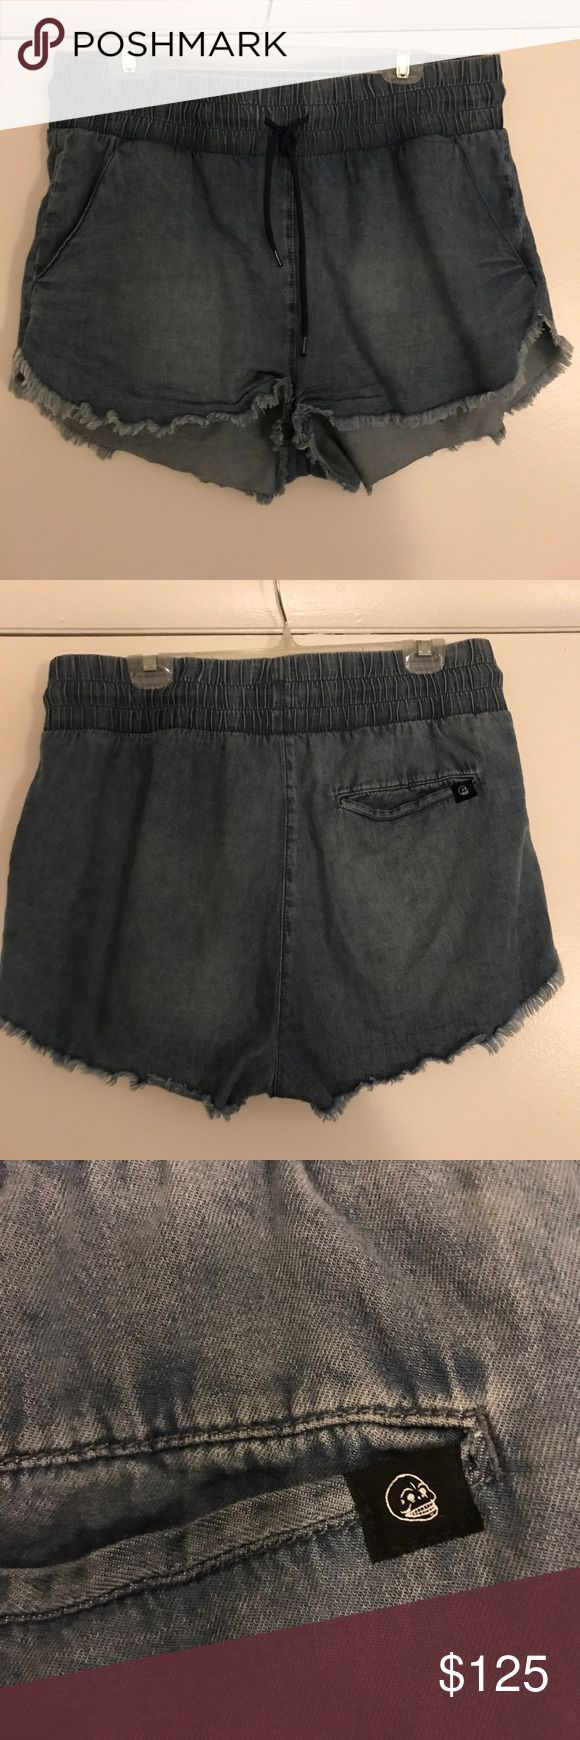 Cheap Monday Dolphin Hem Denim Shorts 🐳 Cheap Monday MEGA COMFY shorts with raw hemline and dolphin cut hem for effortlessly adorable  look. In perfect condition. Elastic waistband is super flattering plus elastic so, flattering in any occasion.  💁🏻🍟🎡🍕🏝 ***shorts are actually much lighter wash than photos appear*** Cheap Monday Shorts Jean Shorts